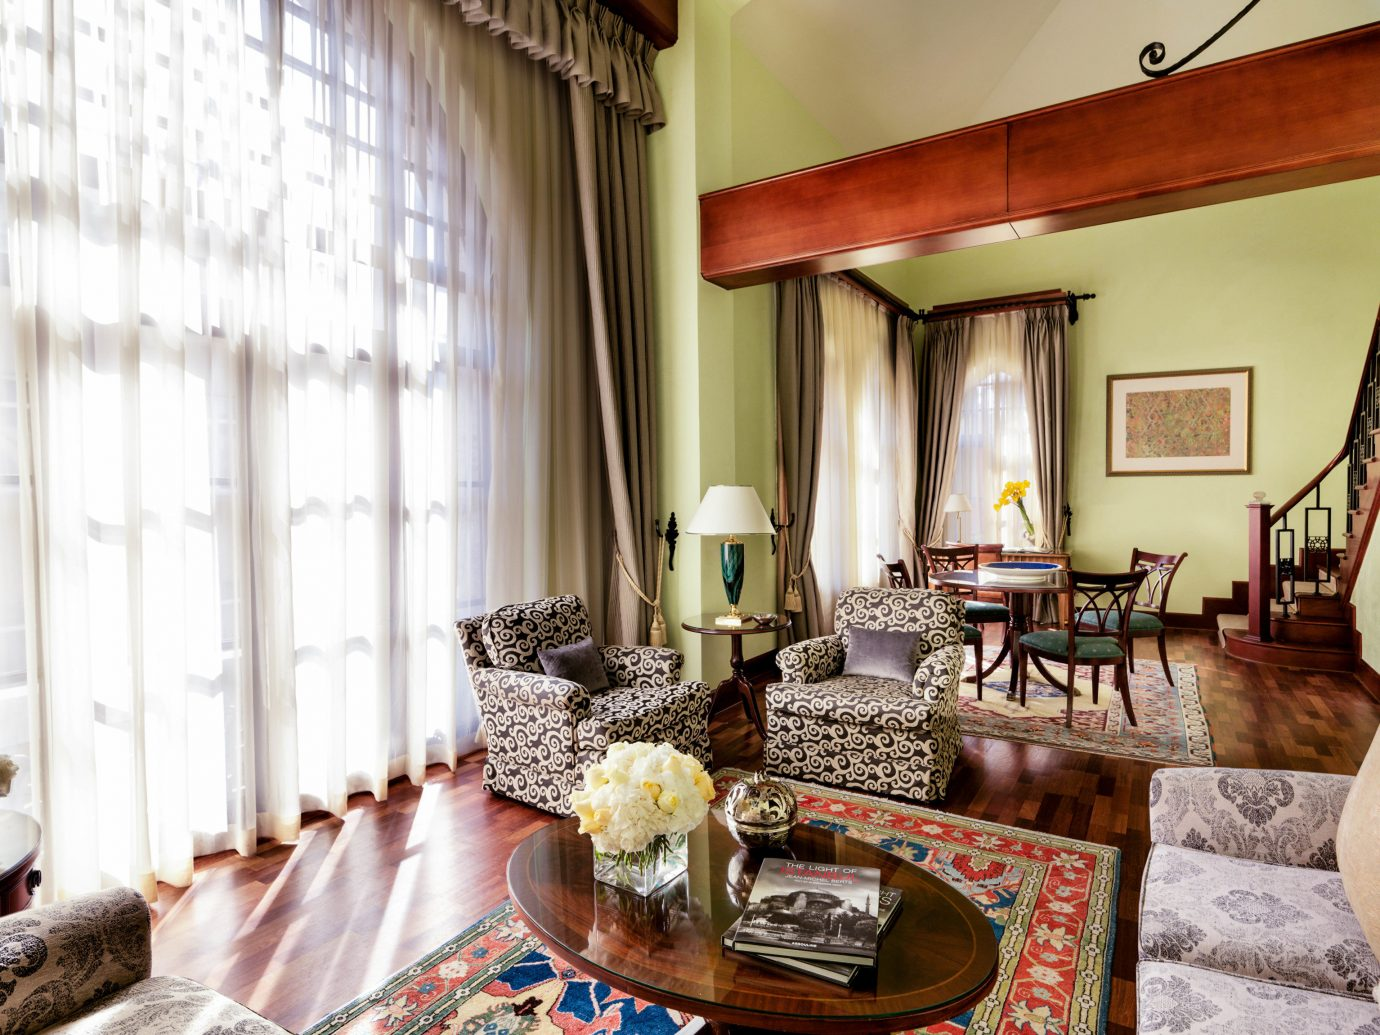 Boutique Hotels Hotels Luxury Travel indoor wall Living room living room interior design window home Suite dining room real estate furniture decorated estate window treatment table